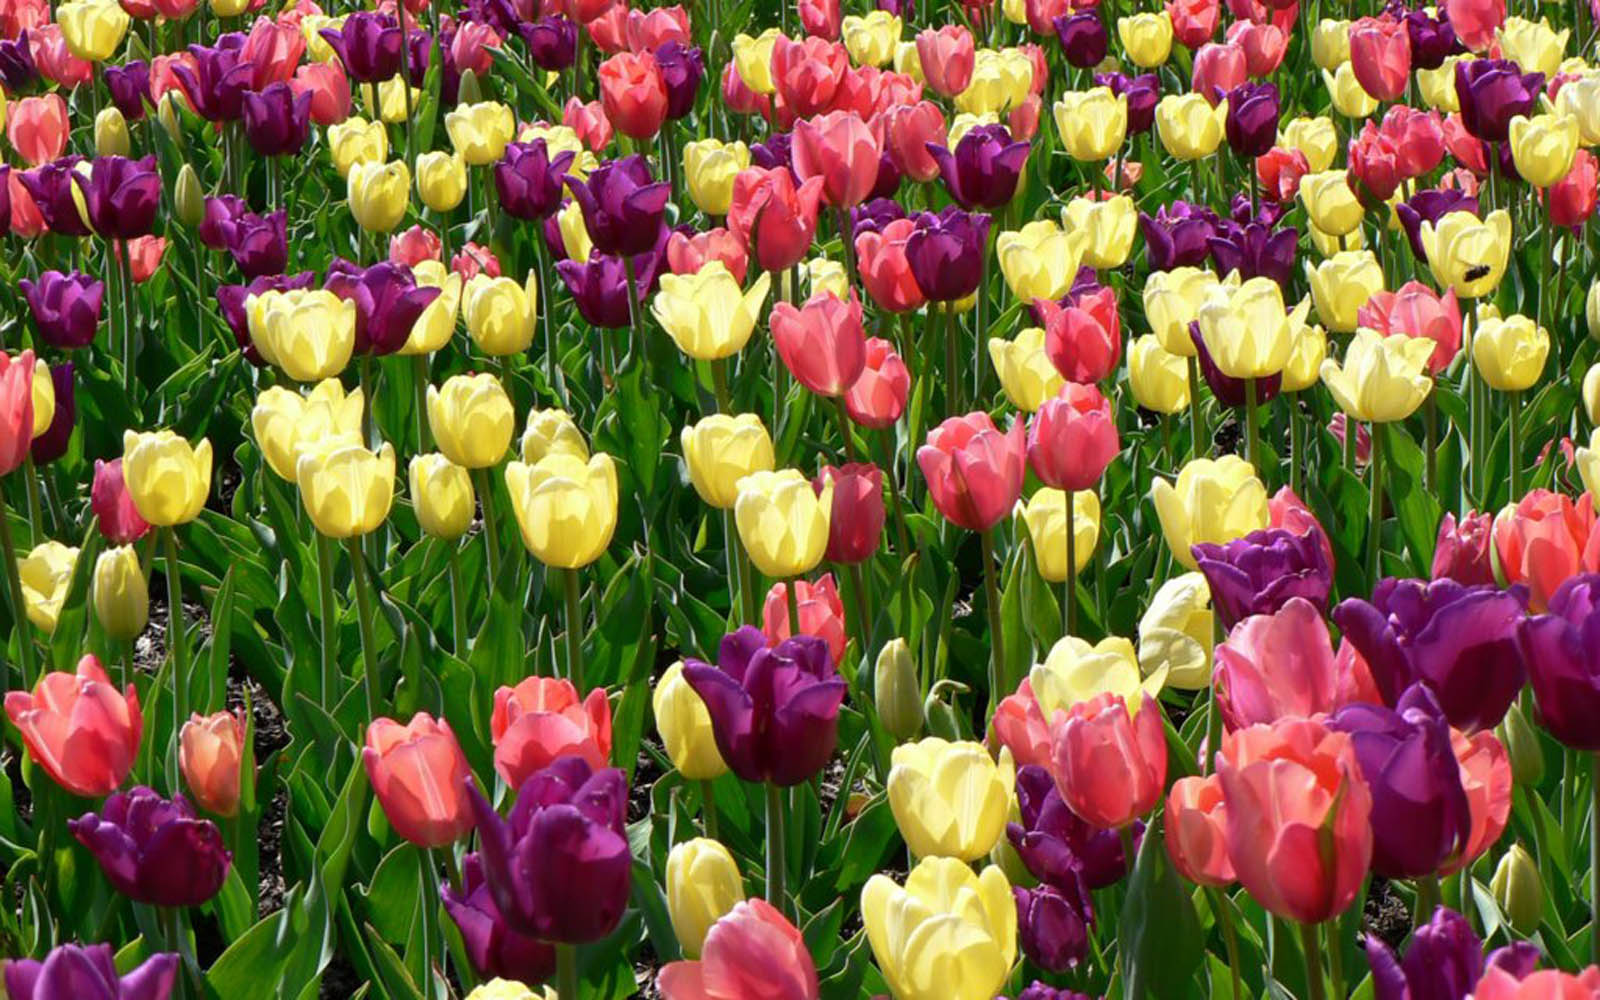 Spring flower pictures download picture Spring Flowers Wallpapers Free Download - 48+ Nice Photos picture